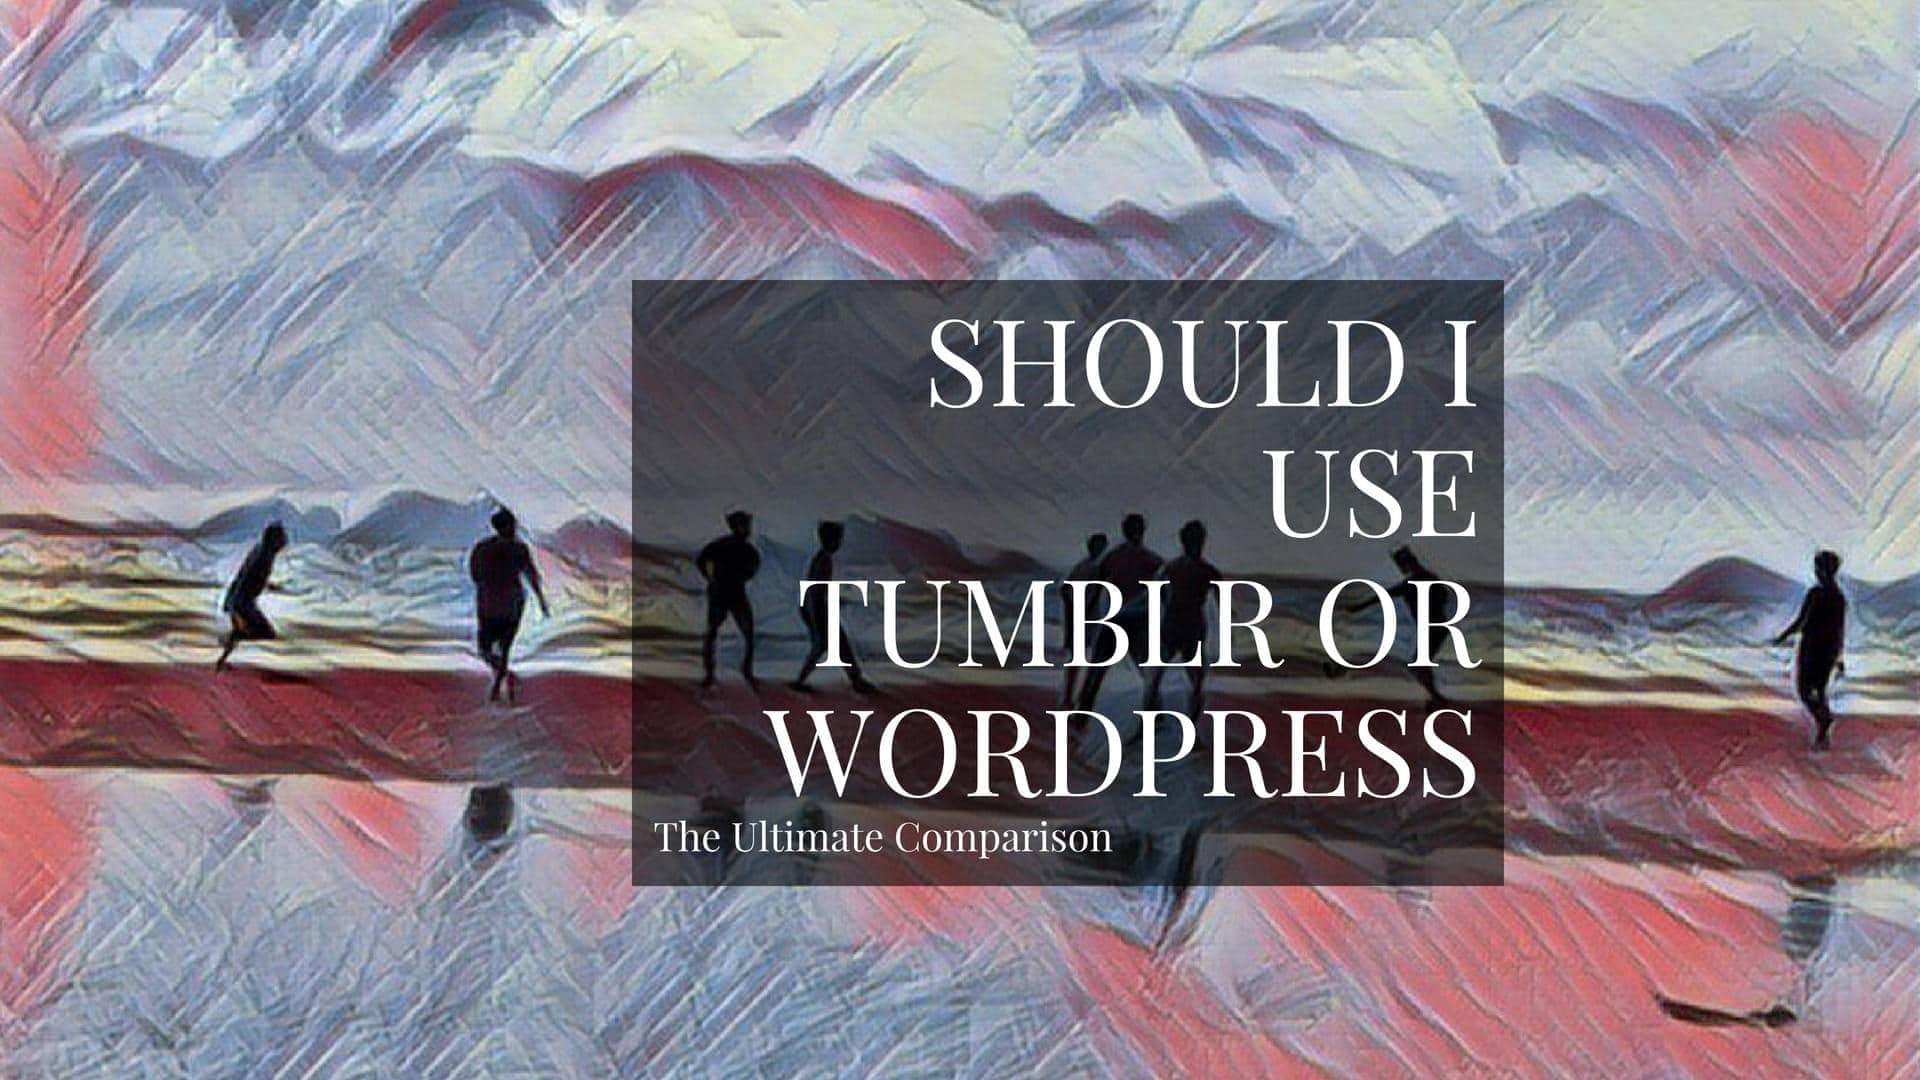 Tumblr vs WordPress Comparison: What's The Difference?